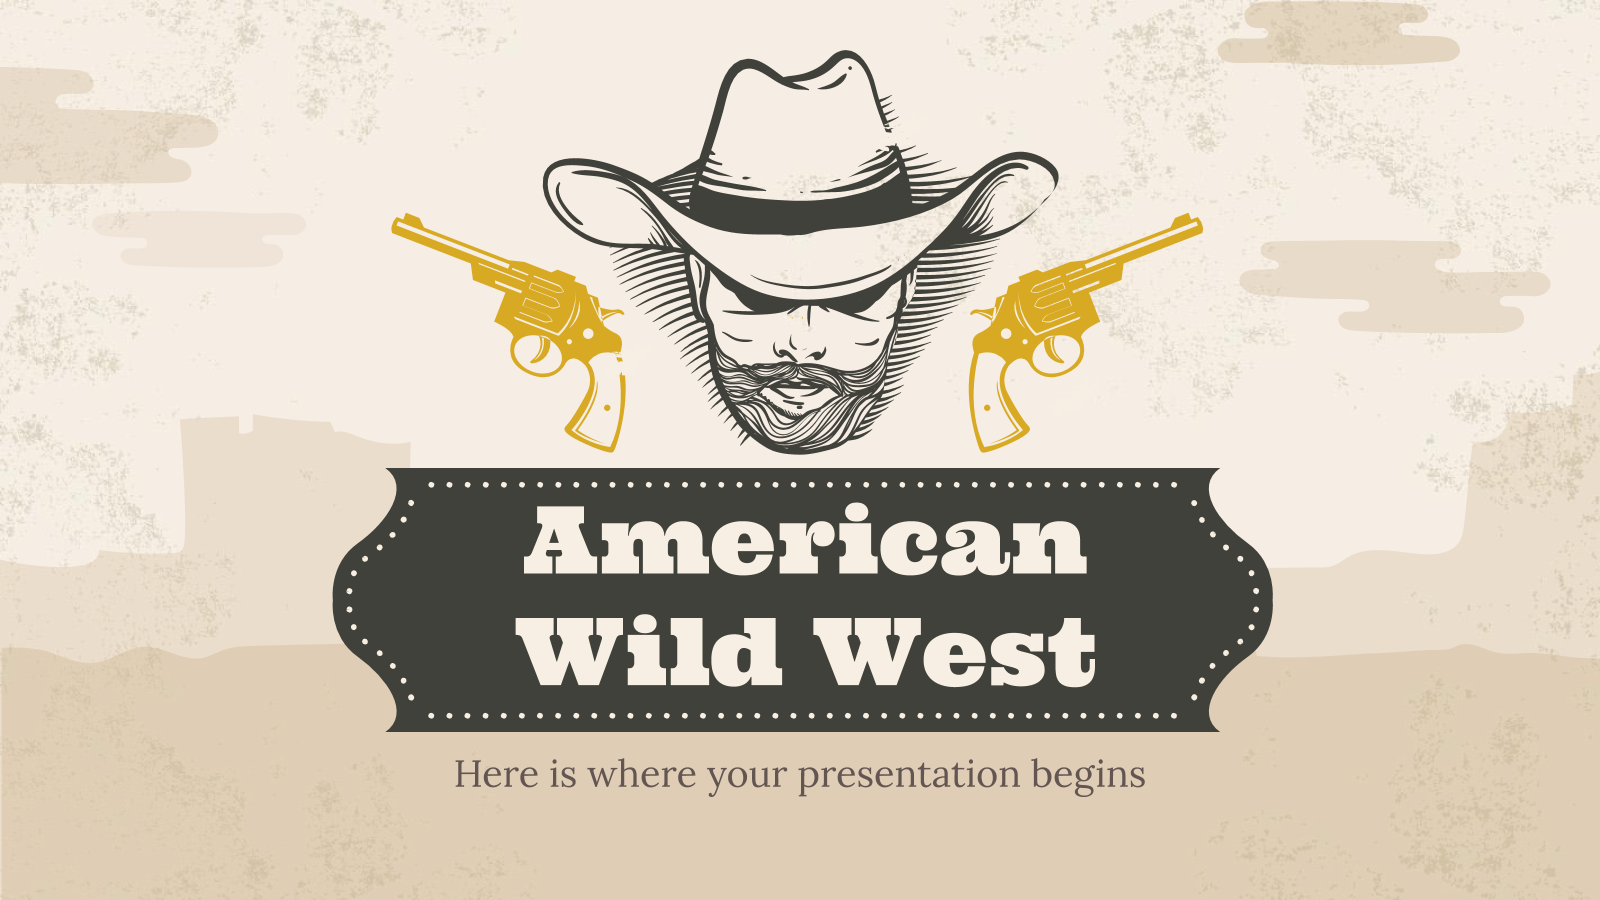 American Wild West presentation template